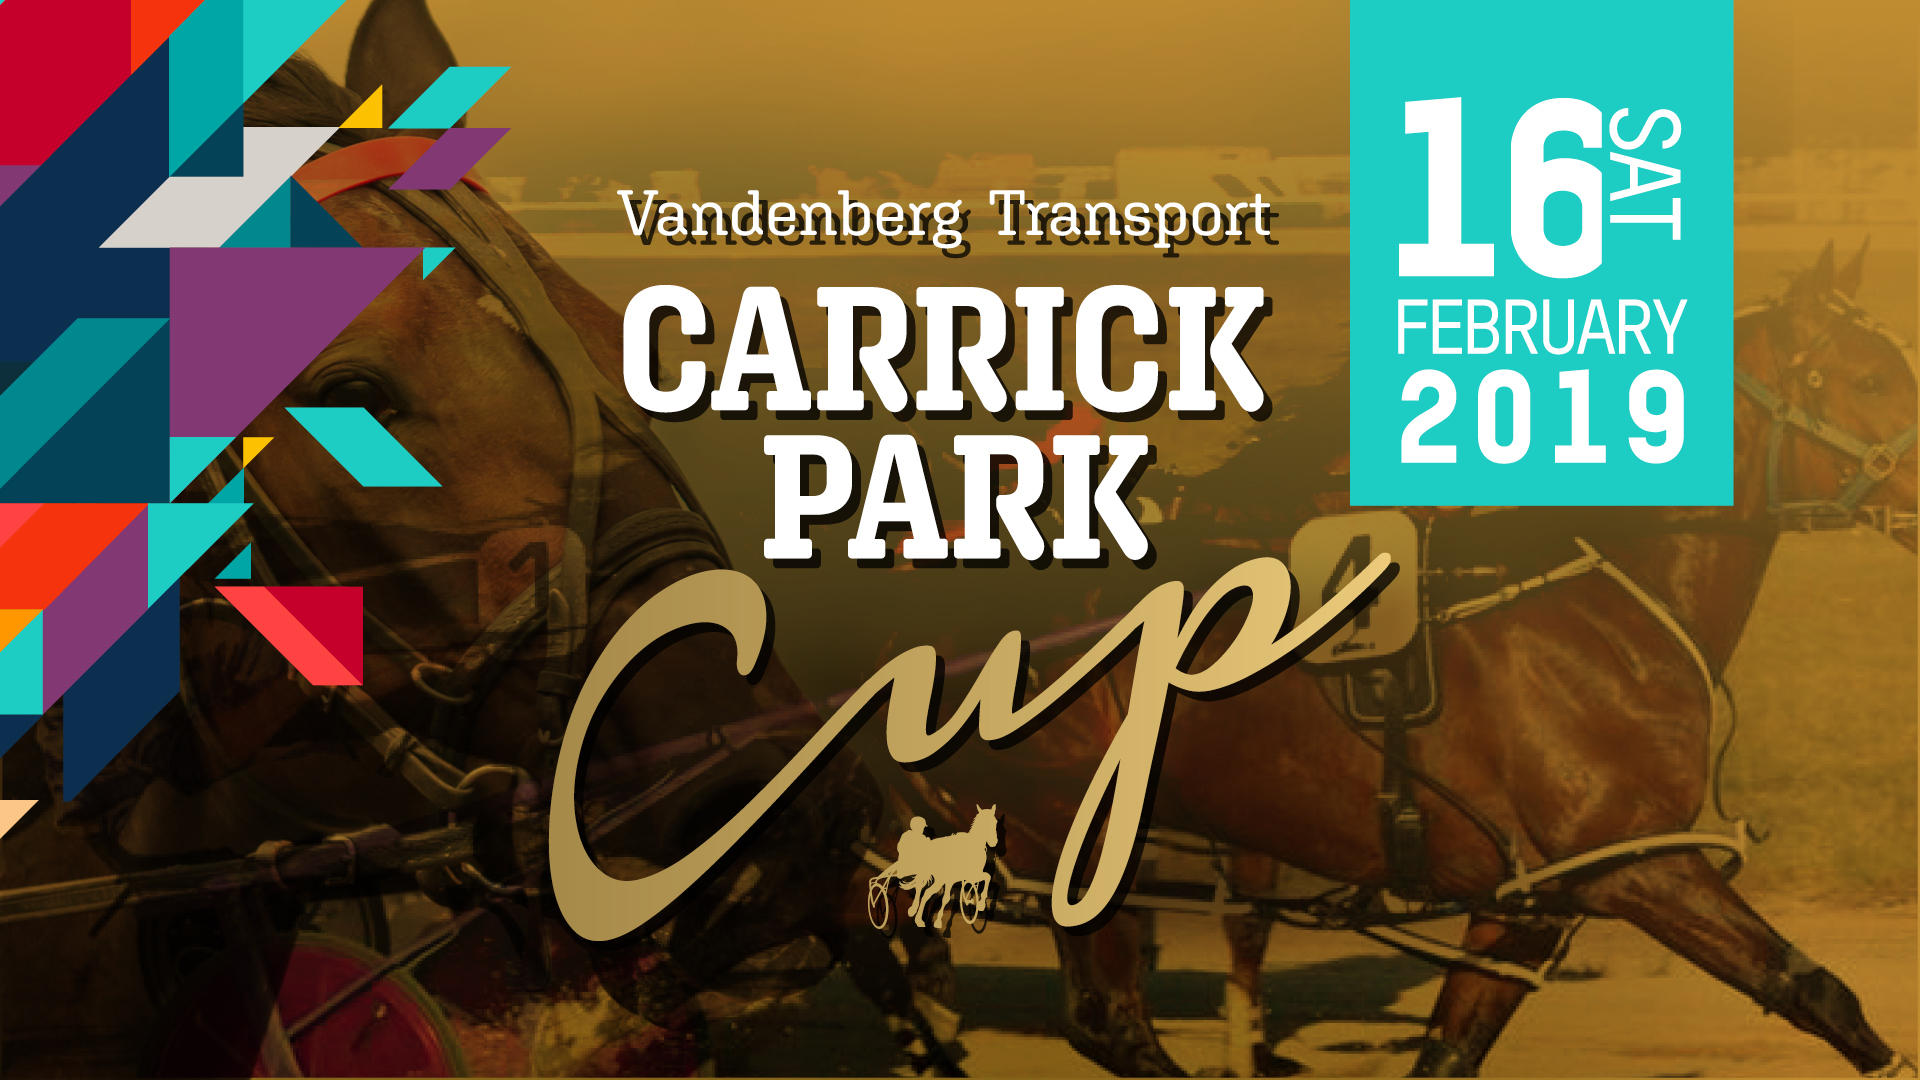 Vandenberg transport carrick pacing cup